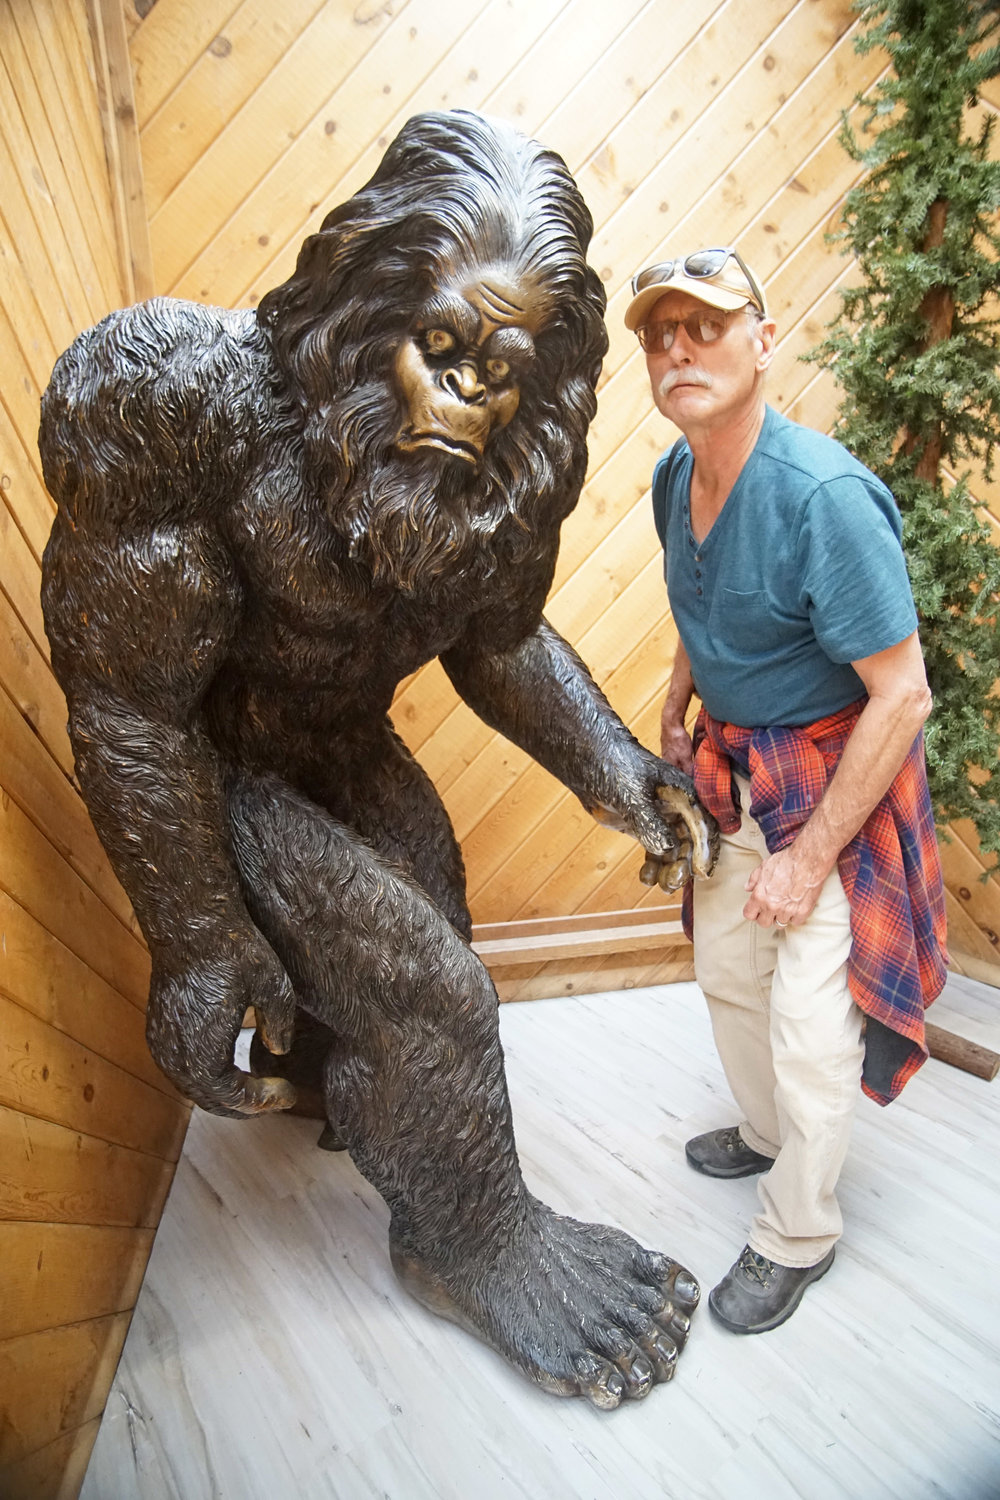 Apparently Bigfoot lore runs rampant round these parts. Here's Dad doing his best impression of sasquatch.